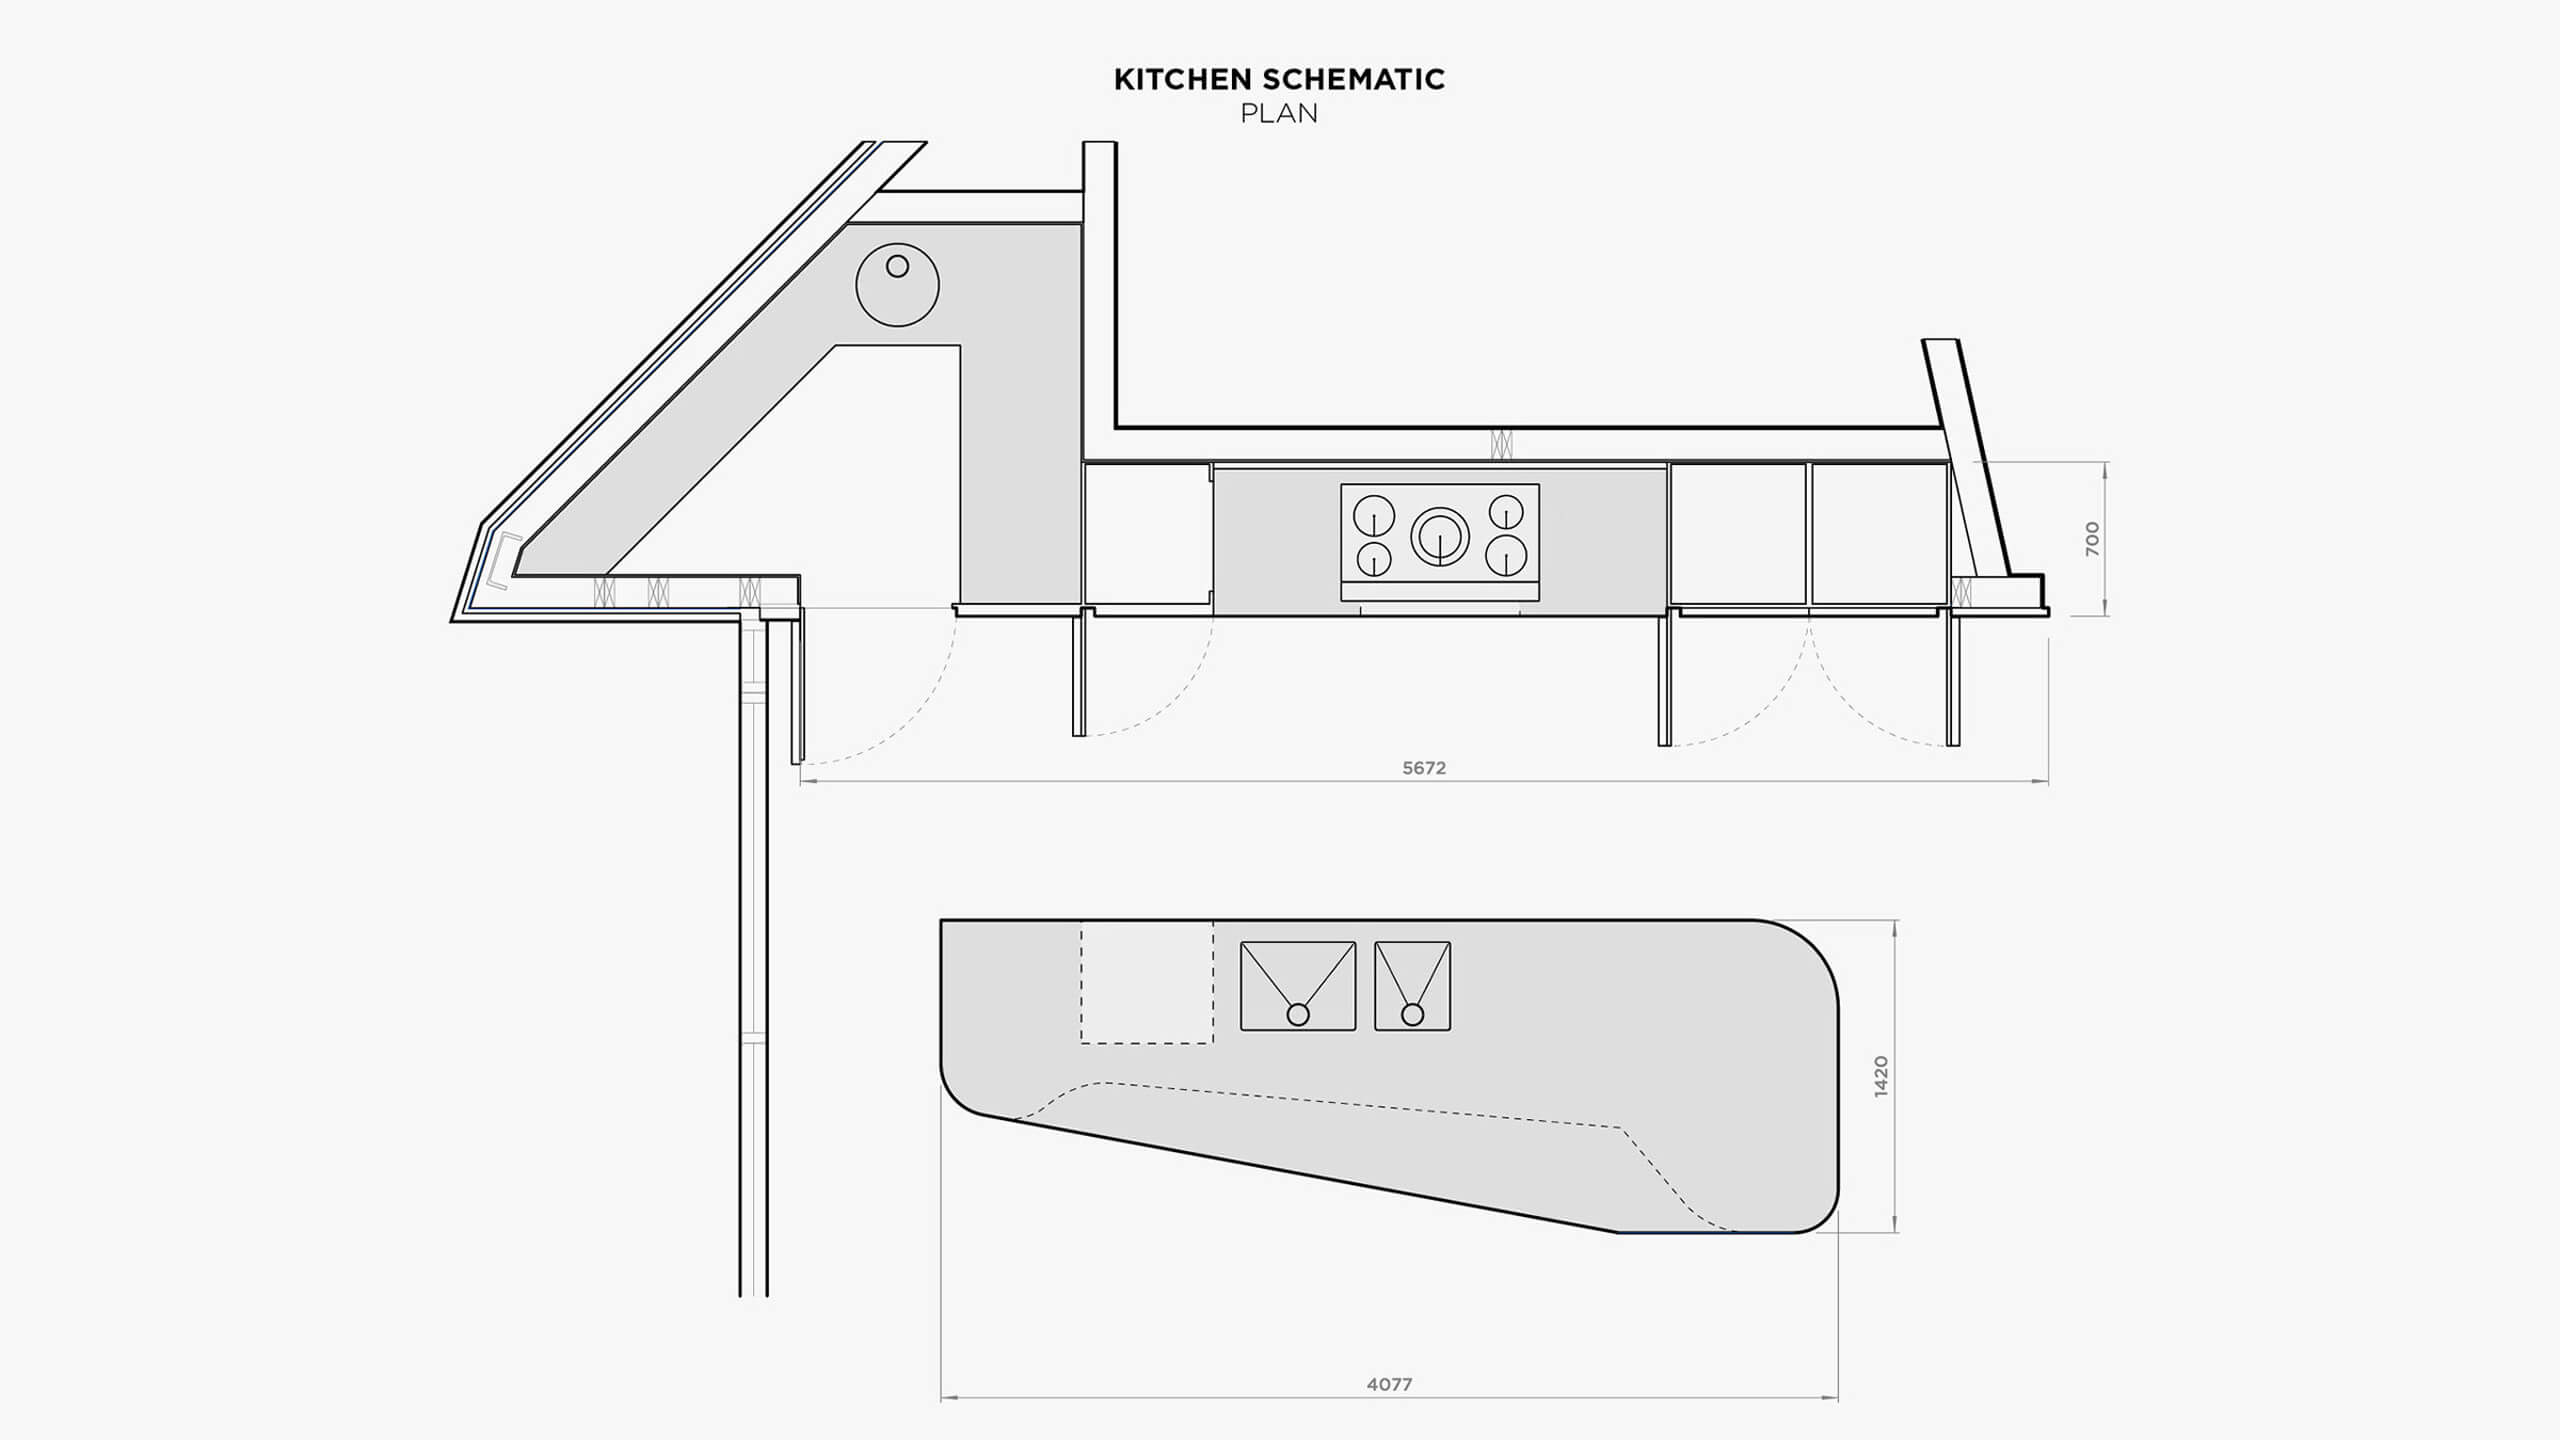 Headland House Kitchen Schematic Plan.